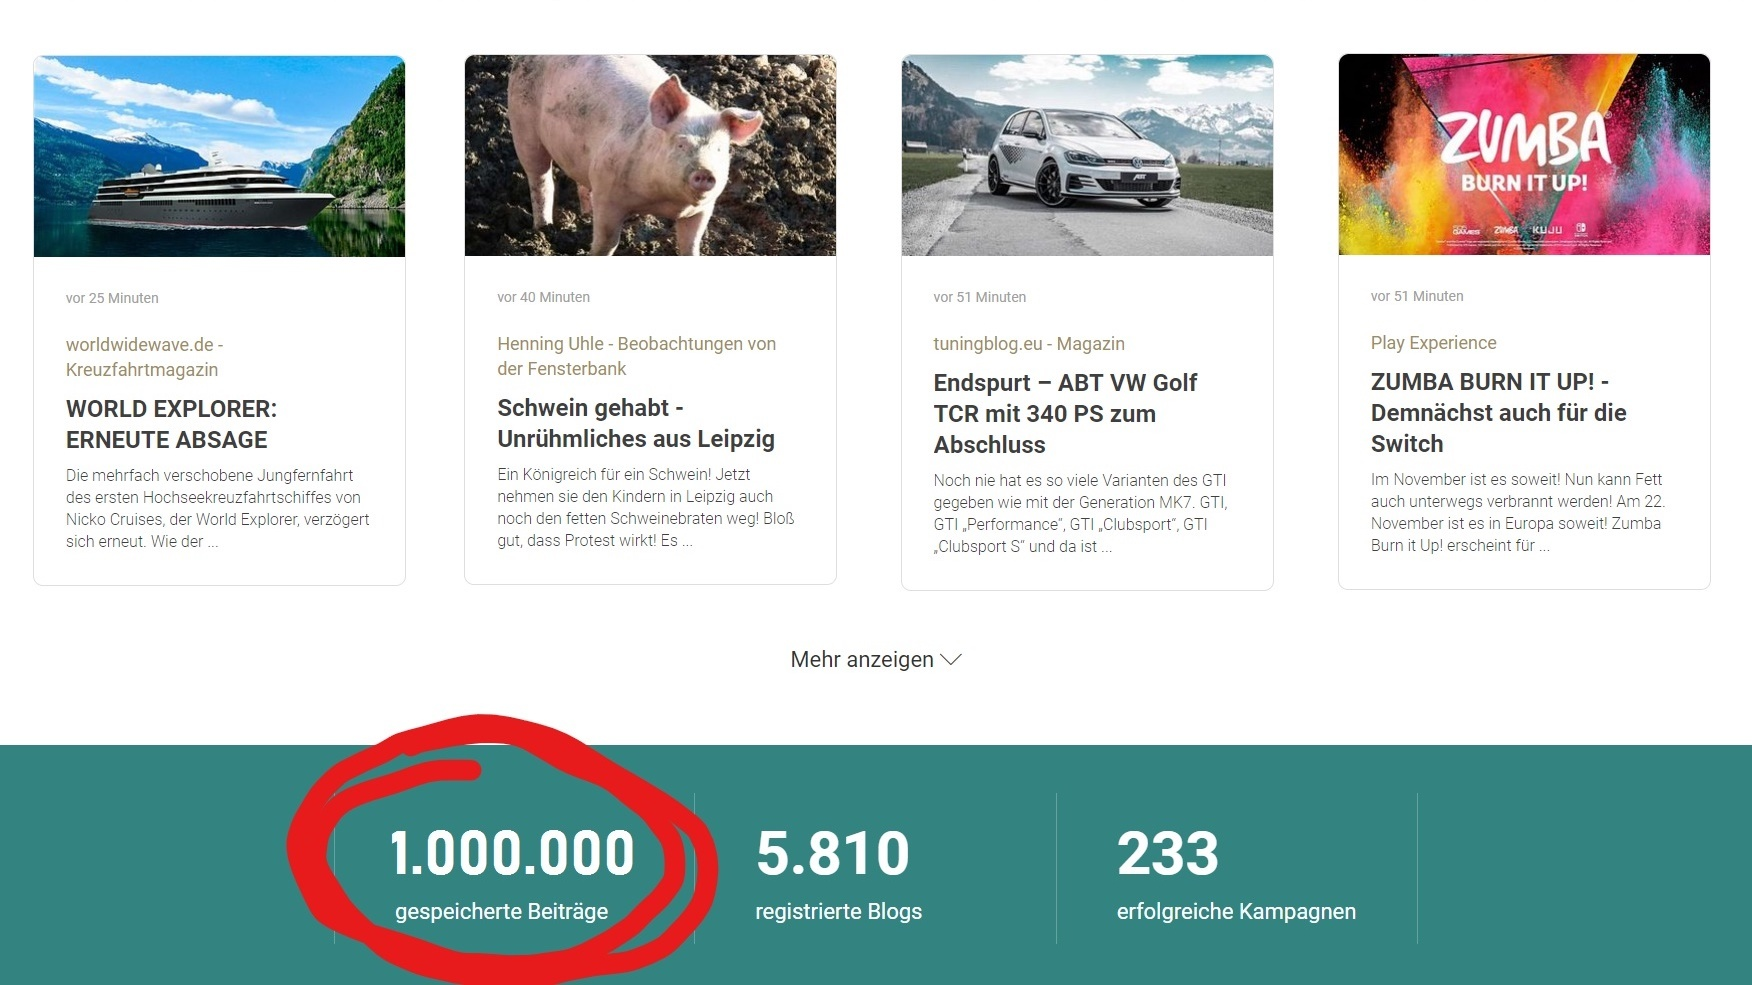 1 Million Blogposts